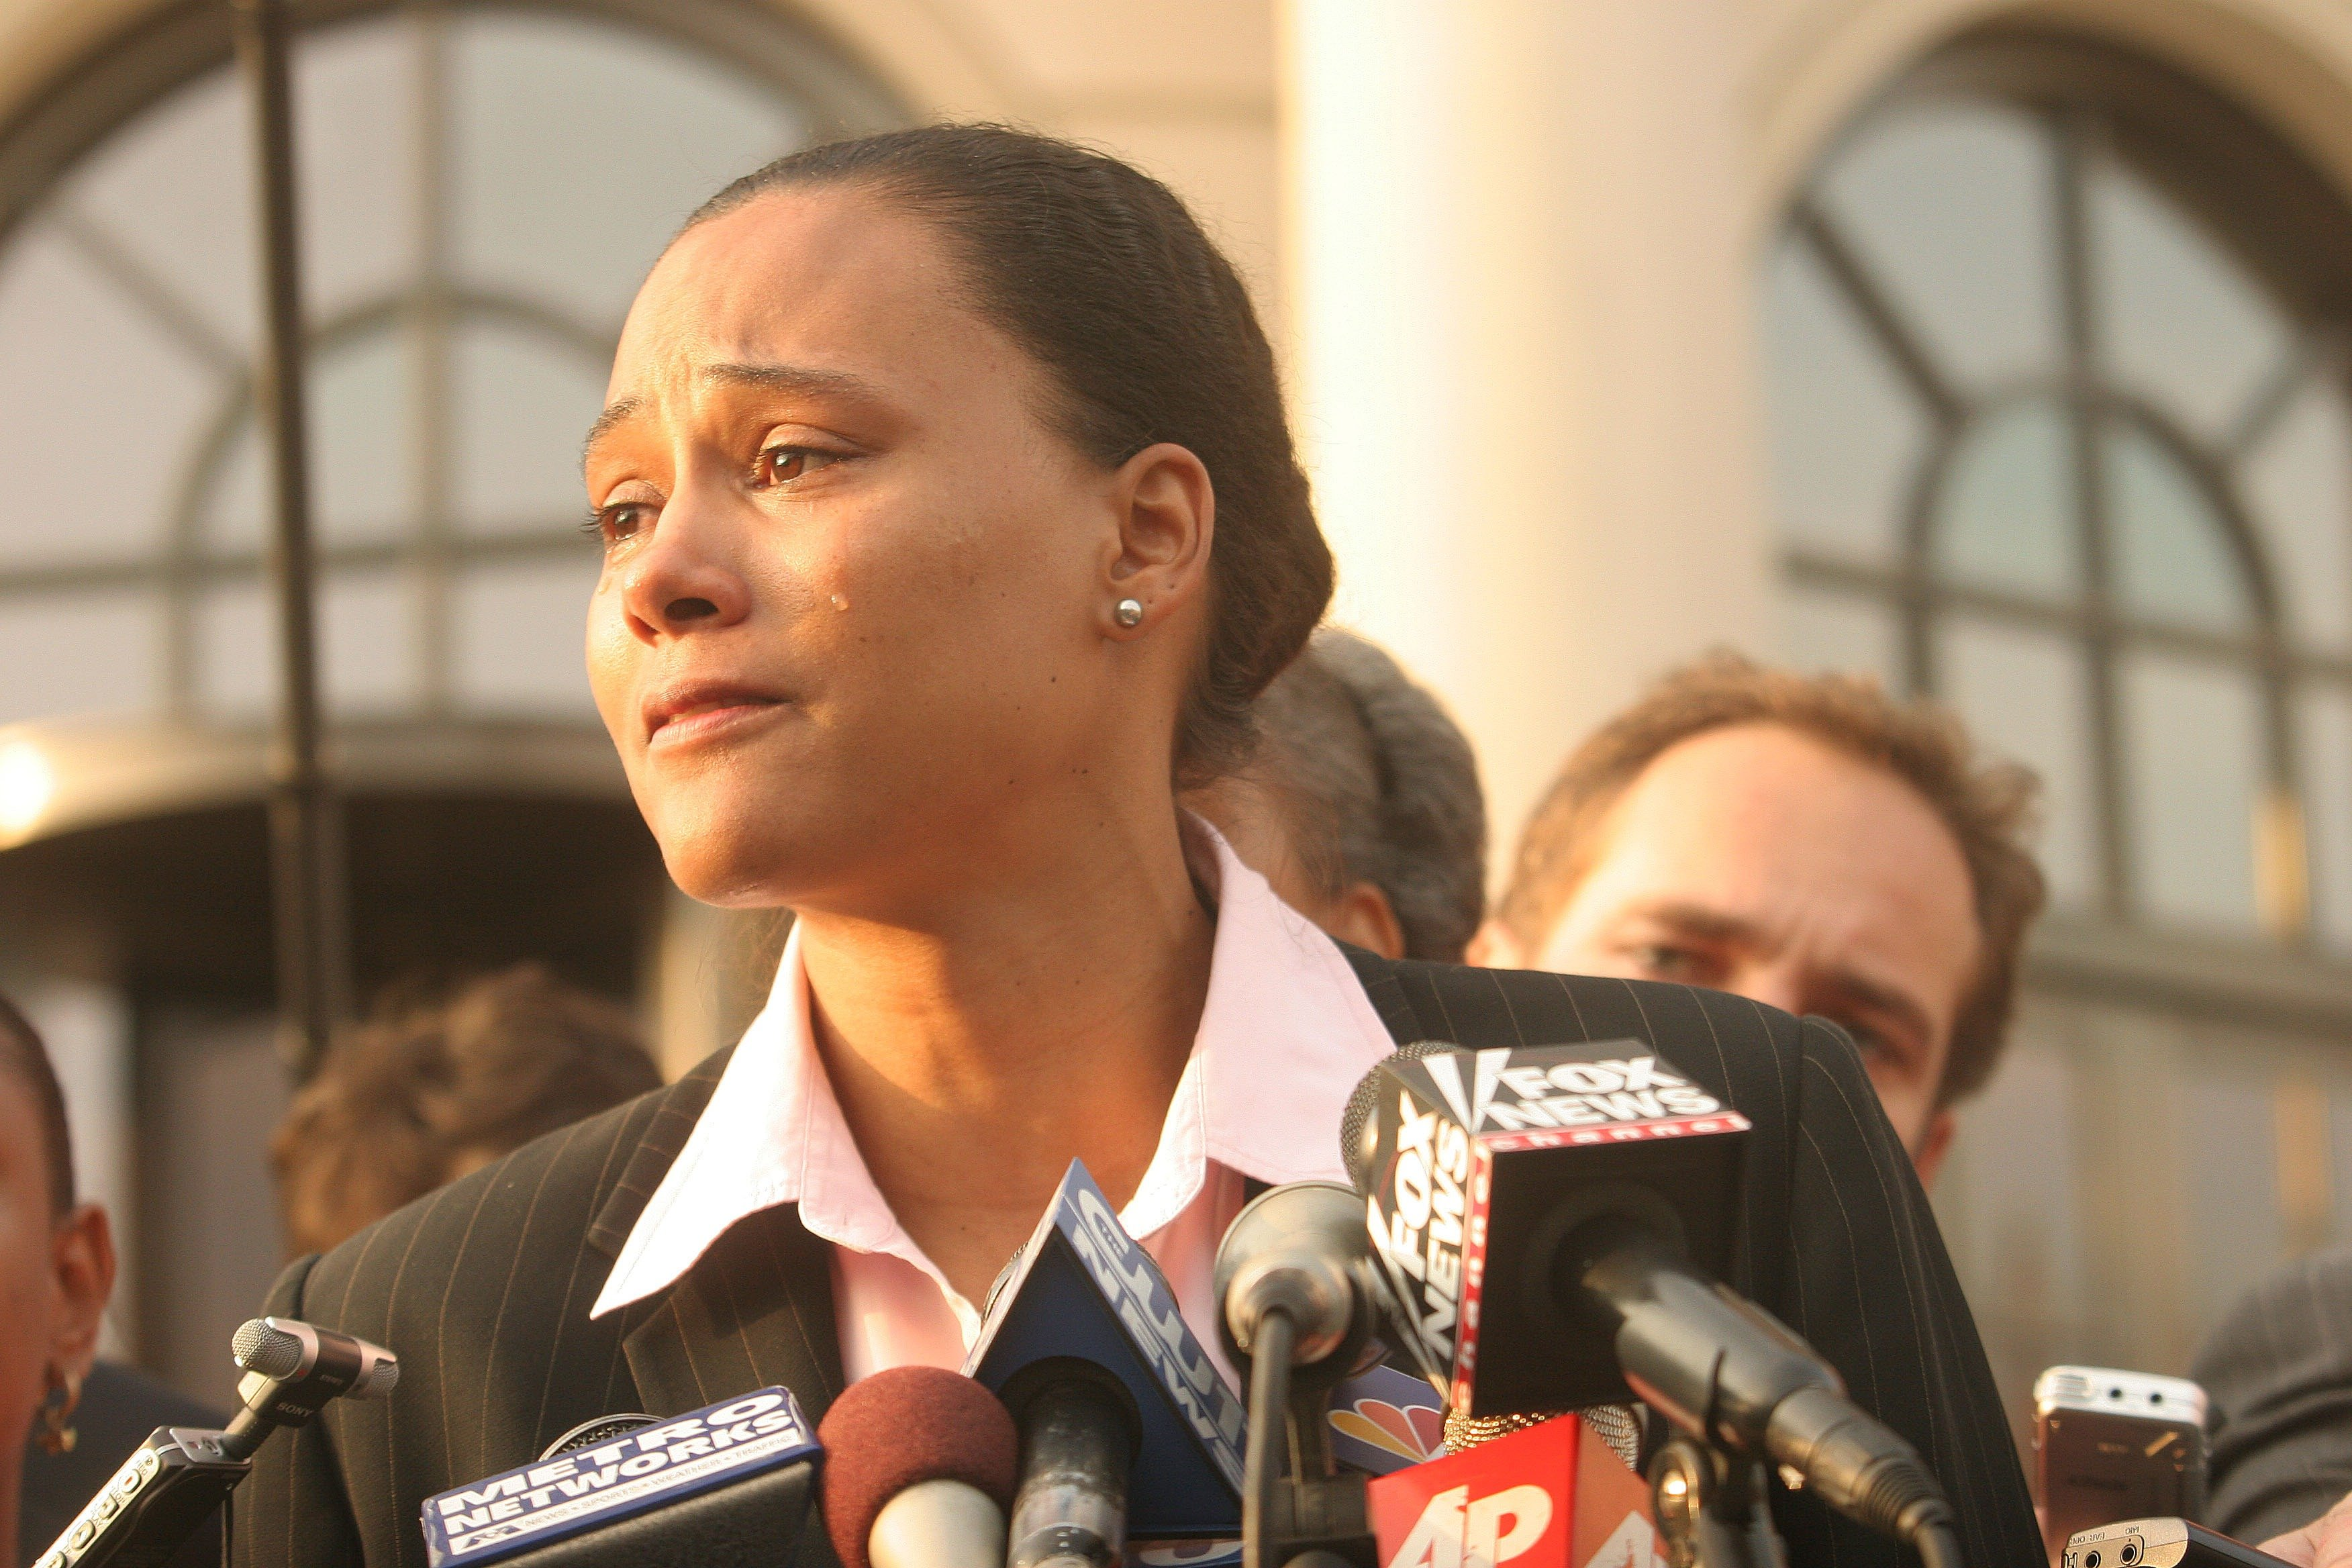 Marion Jones speaks to the media outside a United States federal courthouse October 5, 2007 in White Plains, NY | Photo by Hiroko Masuike/Getty Images